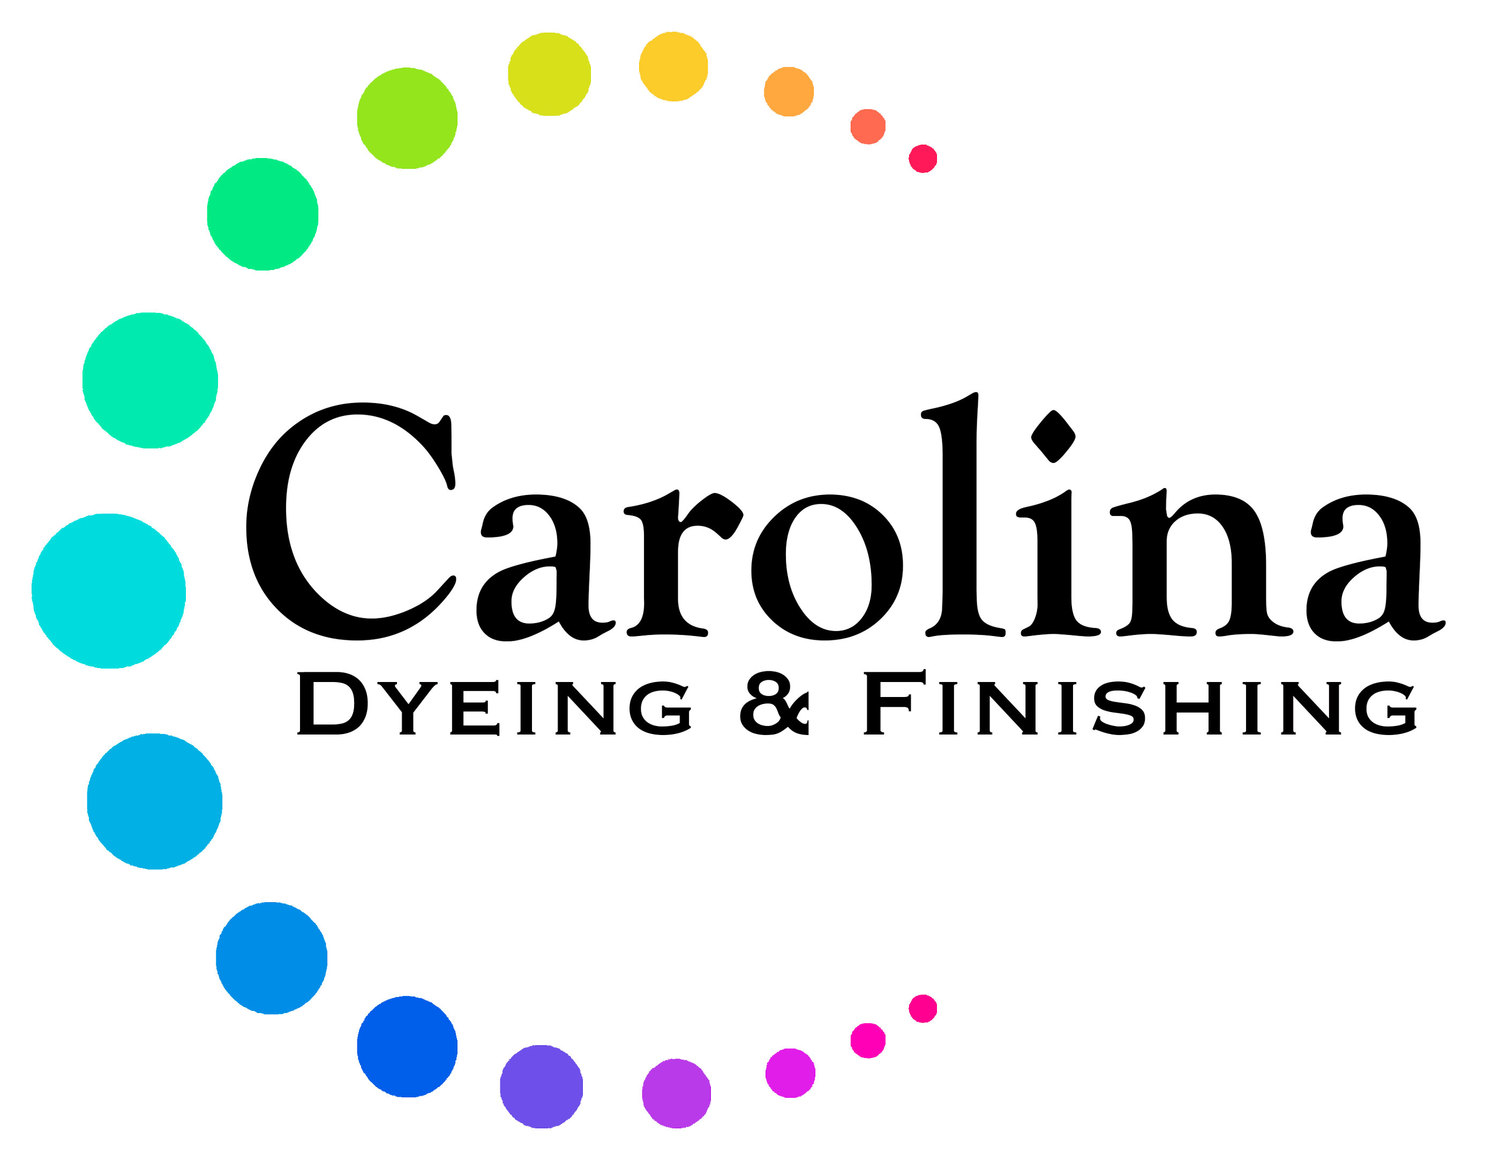 Carolina Dyeing and Finishing